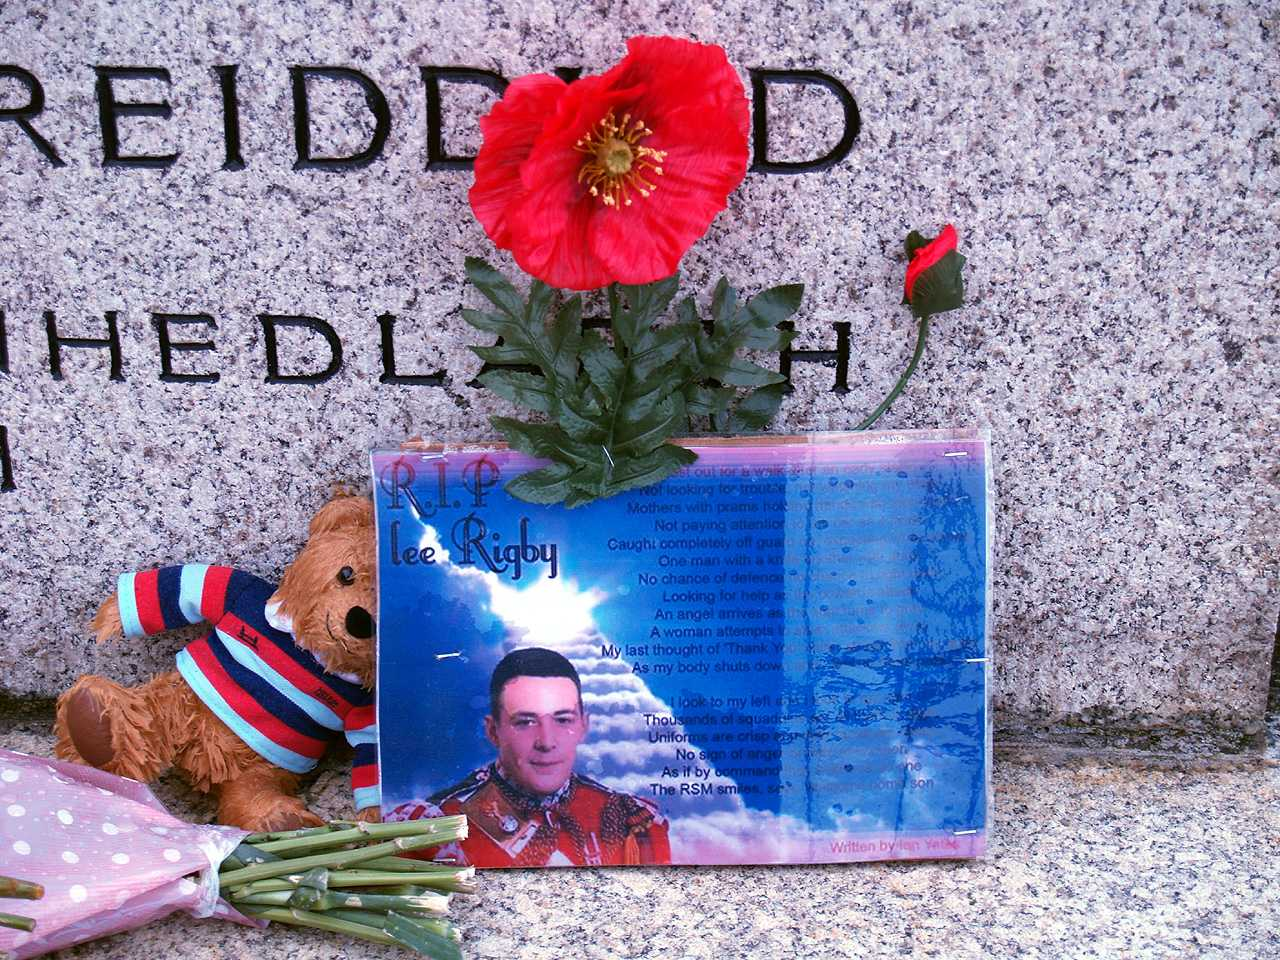 Holyhead pays tribute at the War Memorial - a photo of Lee James Rigby, a poppy and a little cuddly bear all left in tribute